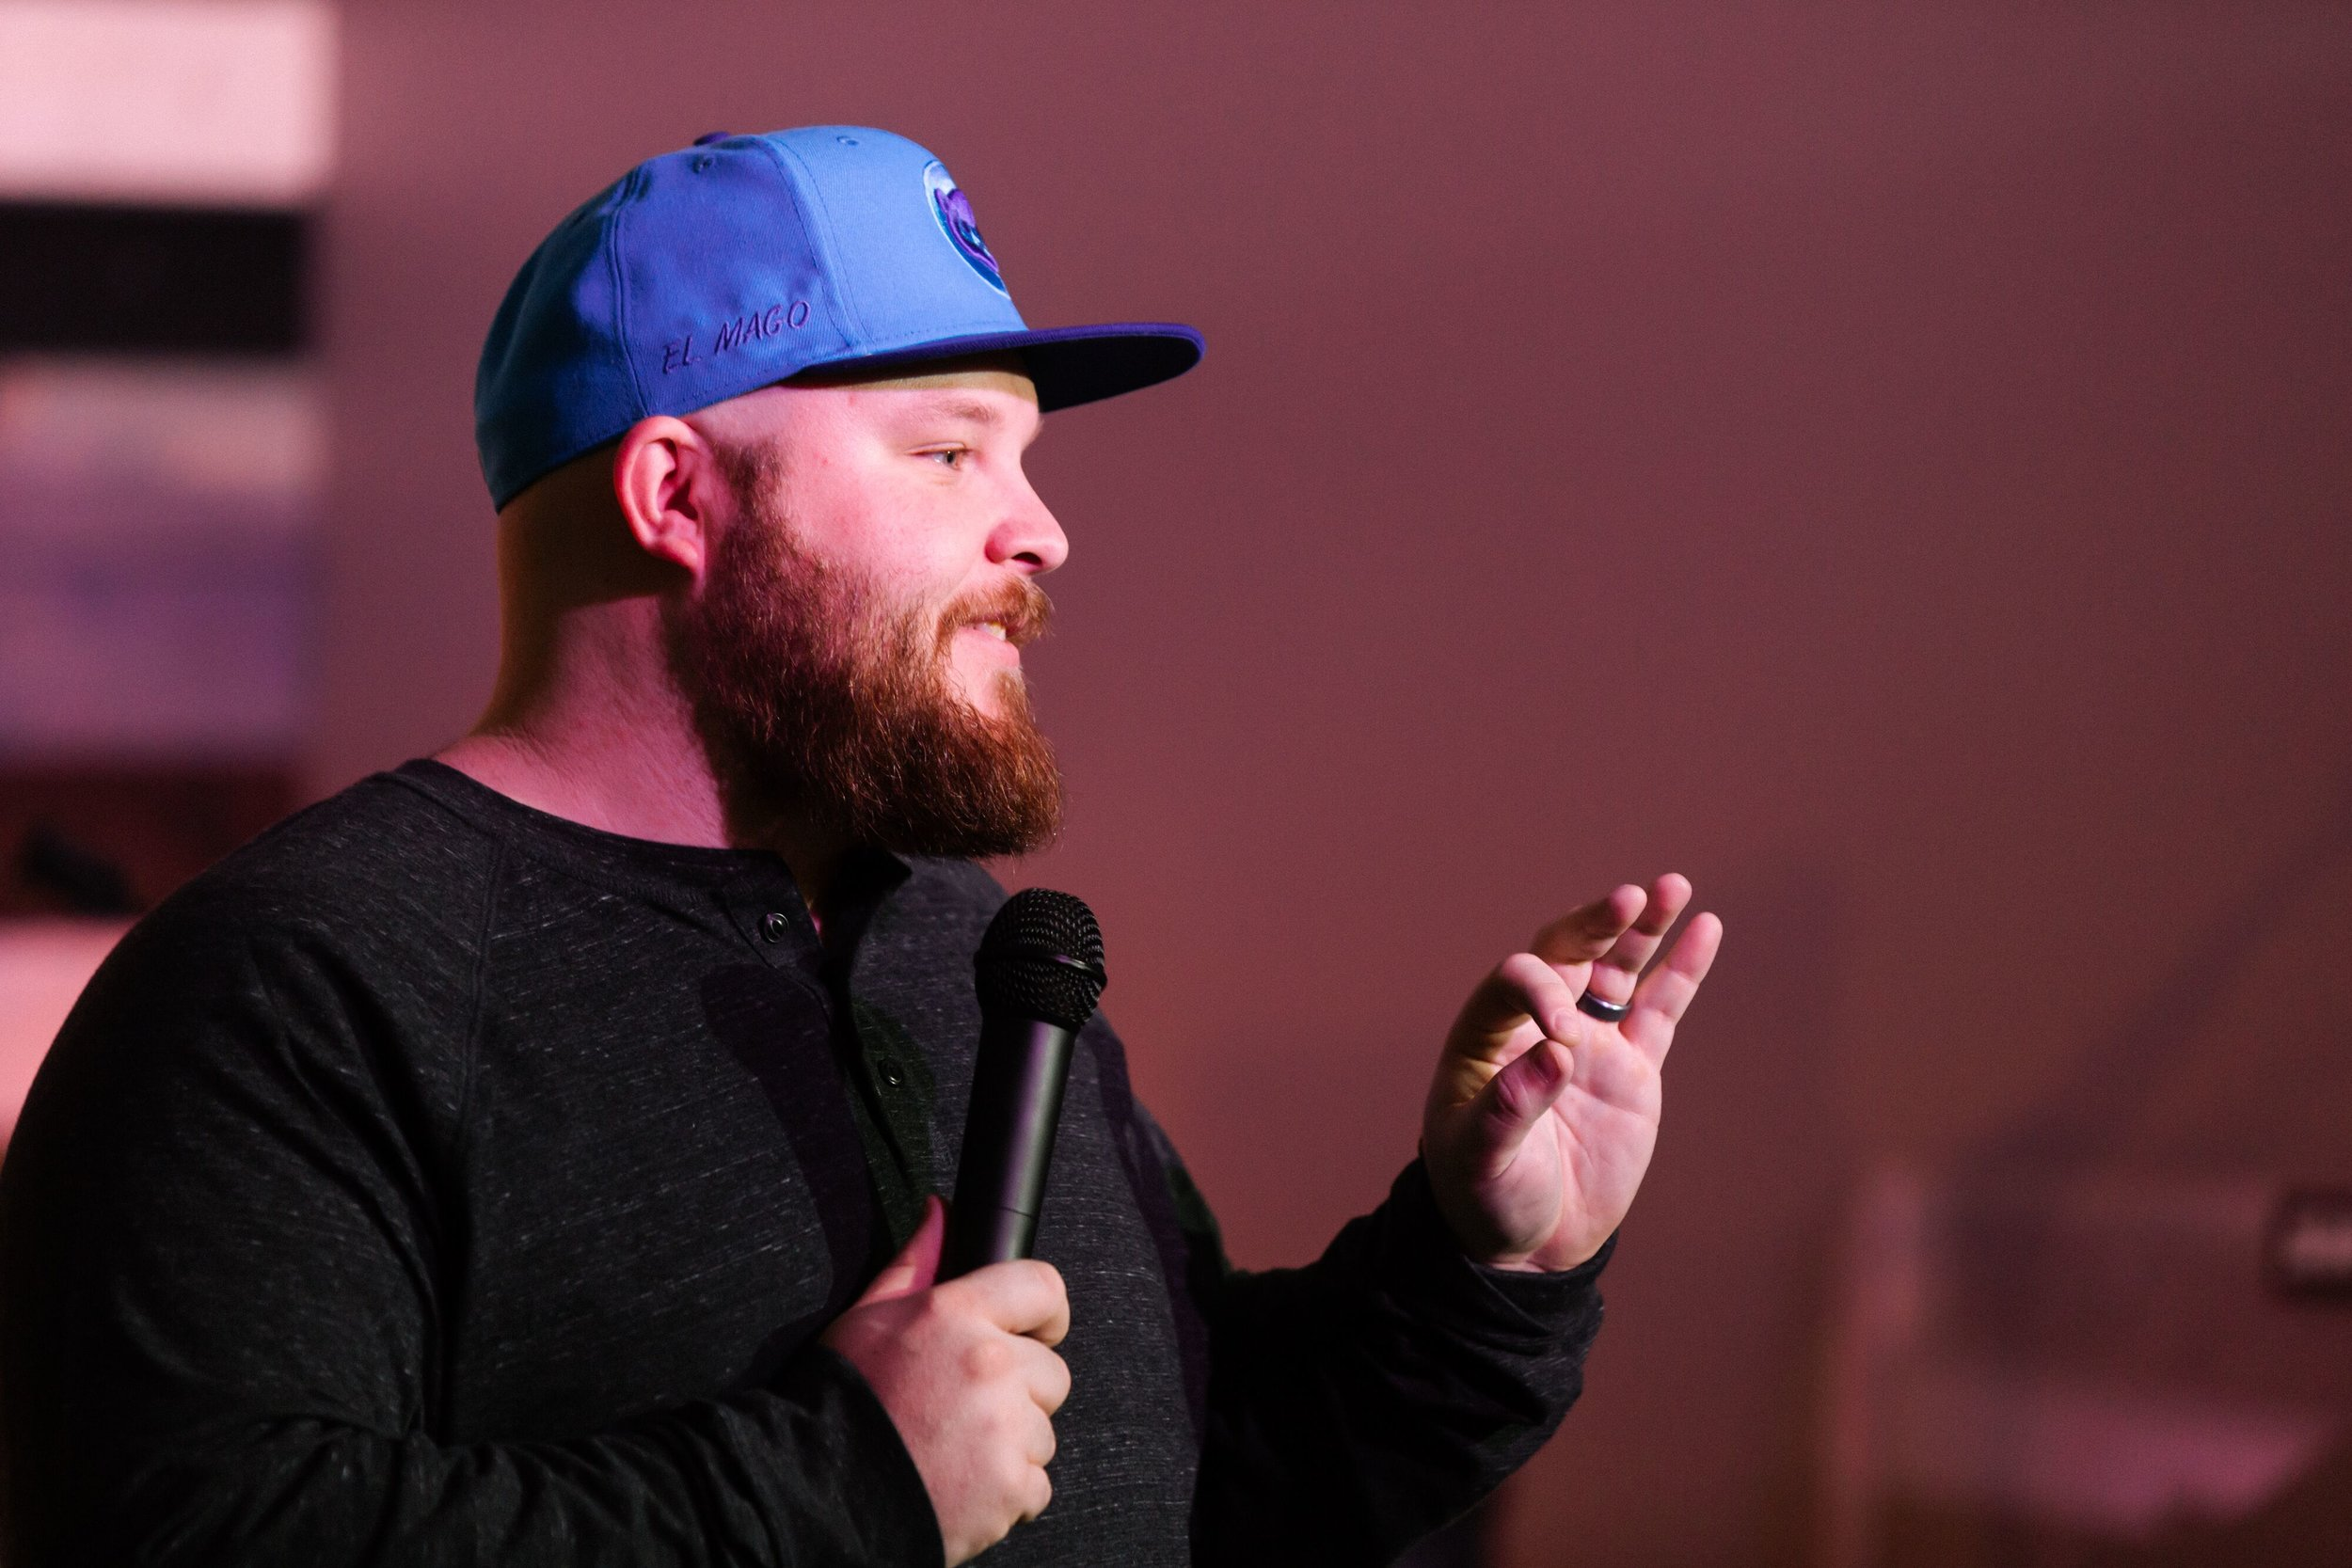 TJ Earl Student Pastor - Hey guys, my name is TJ Earl. I have a passion to make disciples out of the next generation in Knoxville. I graduated from Liberty University with a BA in Religious Studies and am working on my ThM at Dallas Theological Seminary. I am passionate about other things as well. Things like eventually beating Alabama on the third week of October and seeing the Cubs win another World Series. I love music and super hero movies. If you want to know more we can enjoy a cup of Coffee at K Brew together, my treat.